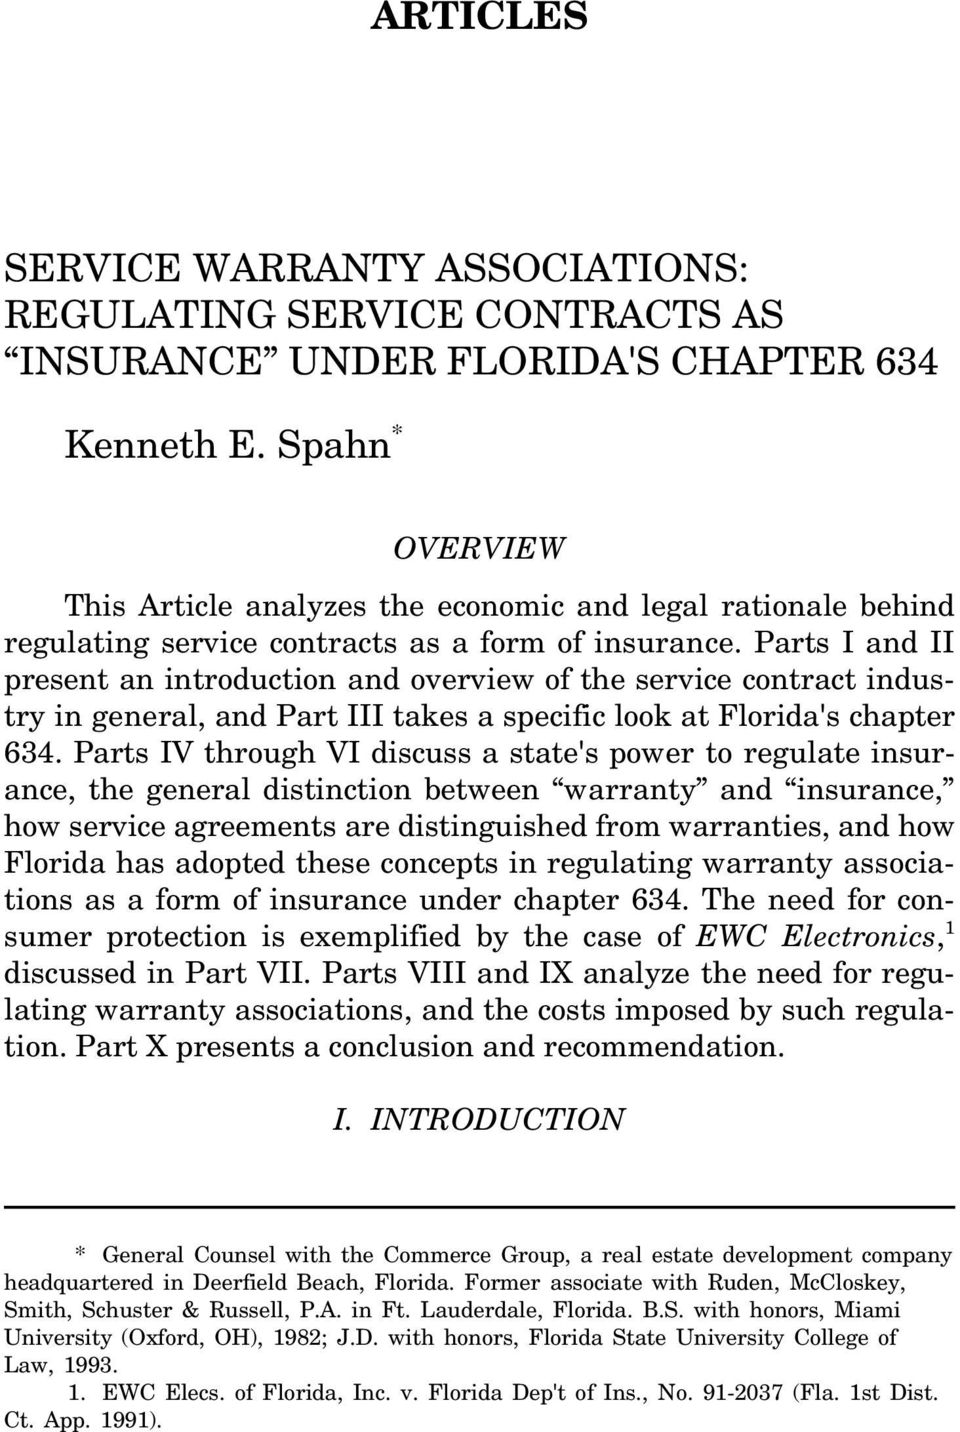 Parts I and II present an introduction and overview of the service contract industry in general, and Part III takes a specific look at Florida's chapter 634.